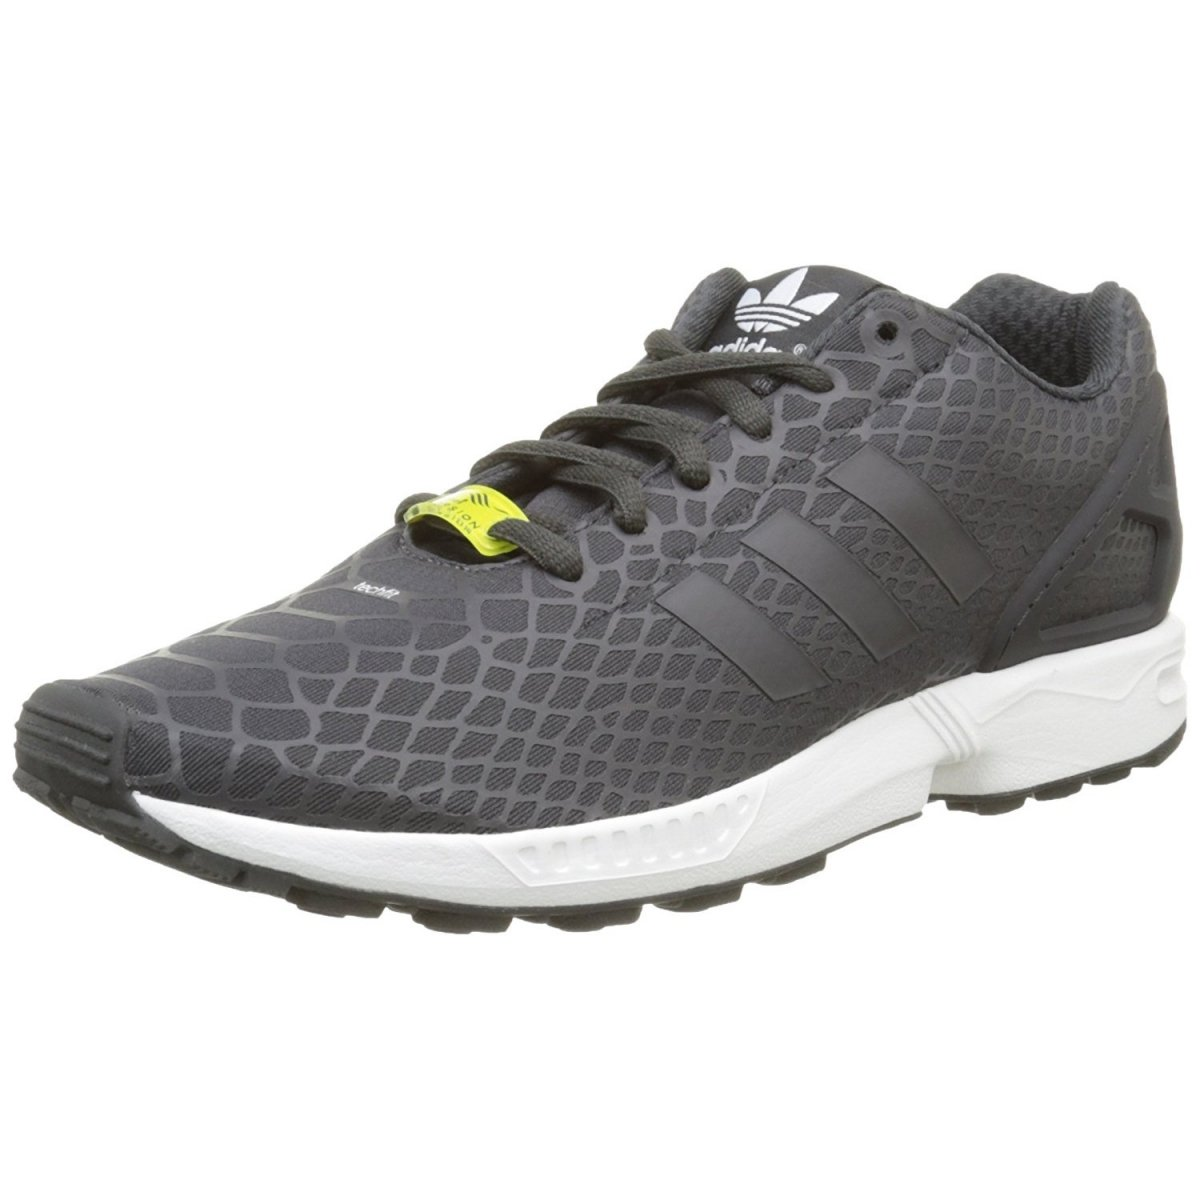 b3d78fe15 ADIDAS ORIGINALS ZX FLUX TECHFIT Men Snaekers Athletic Shoes S75488 ...